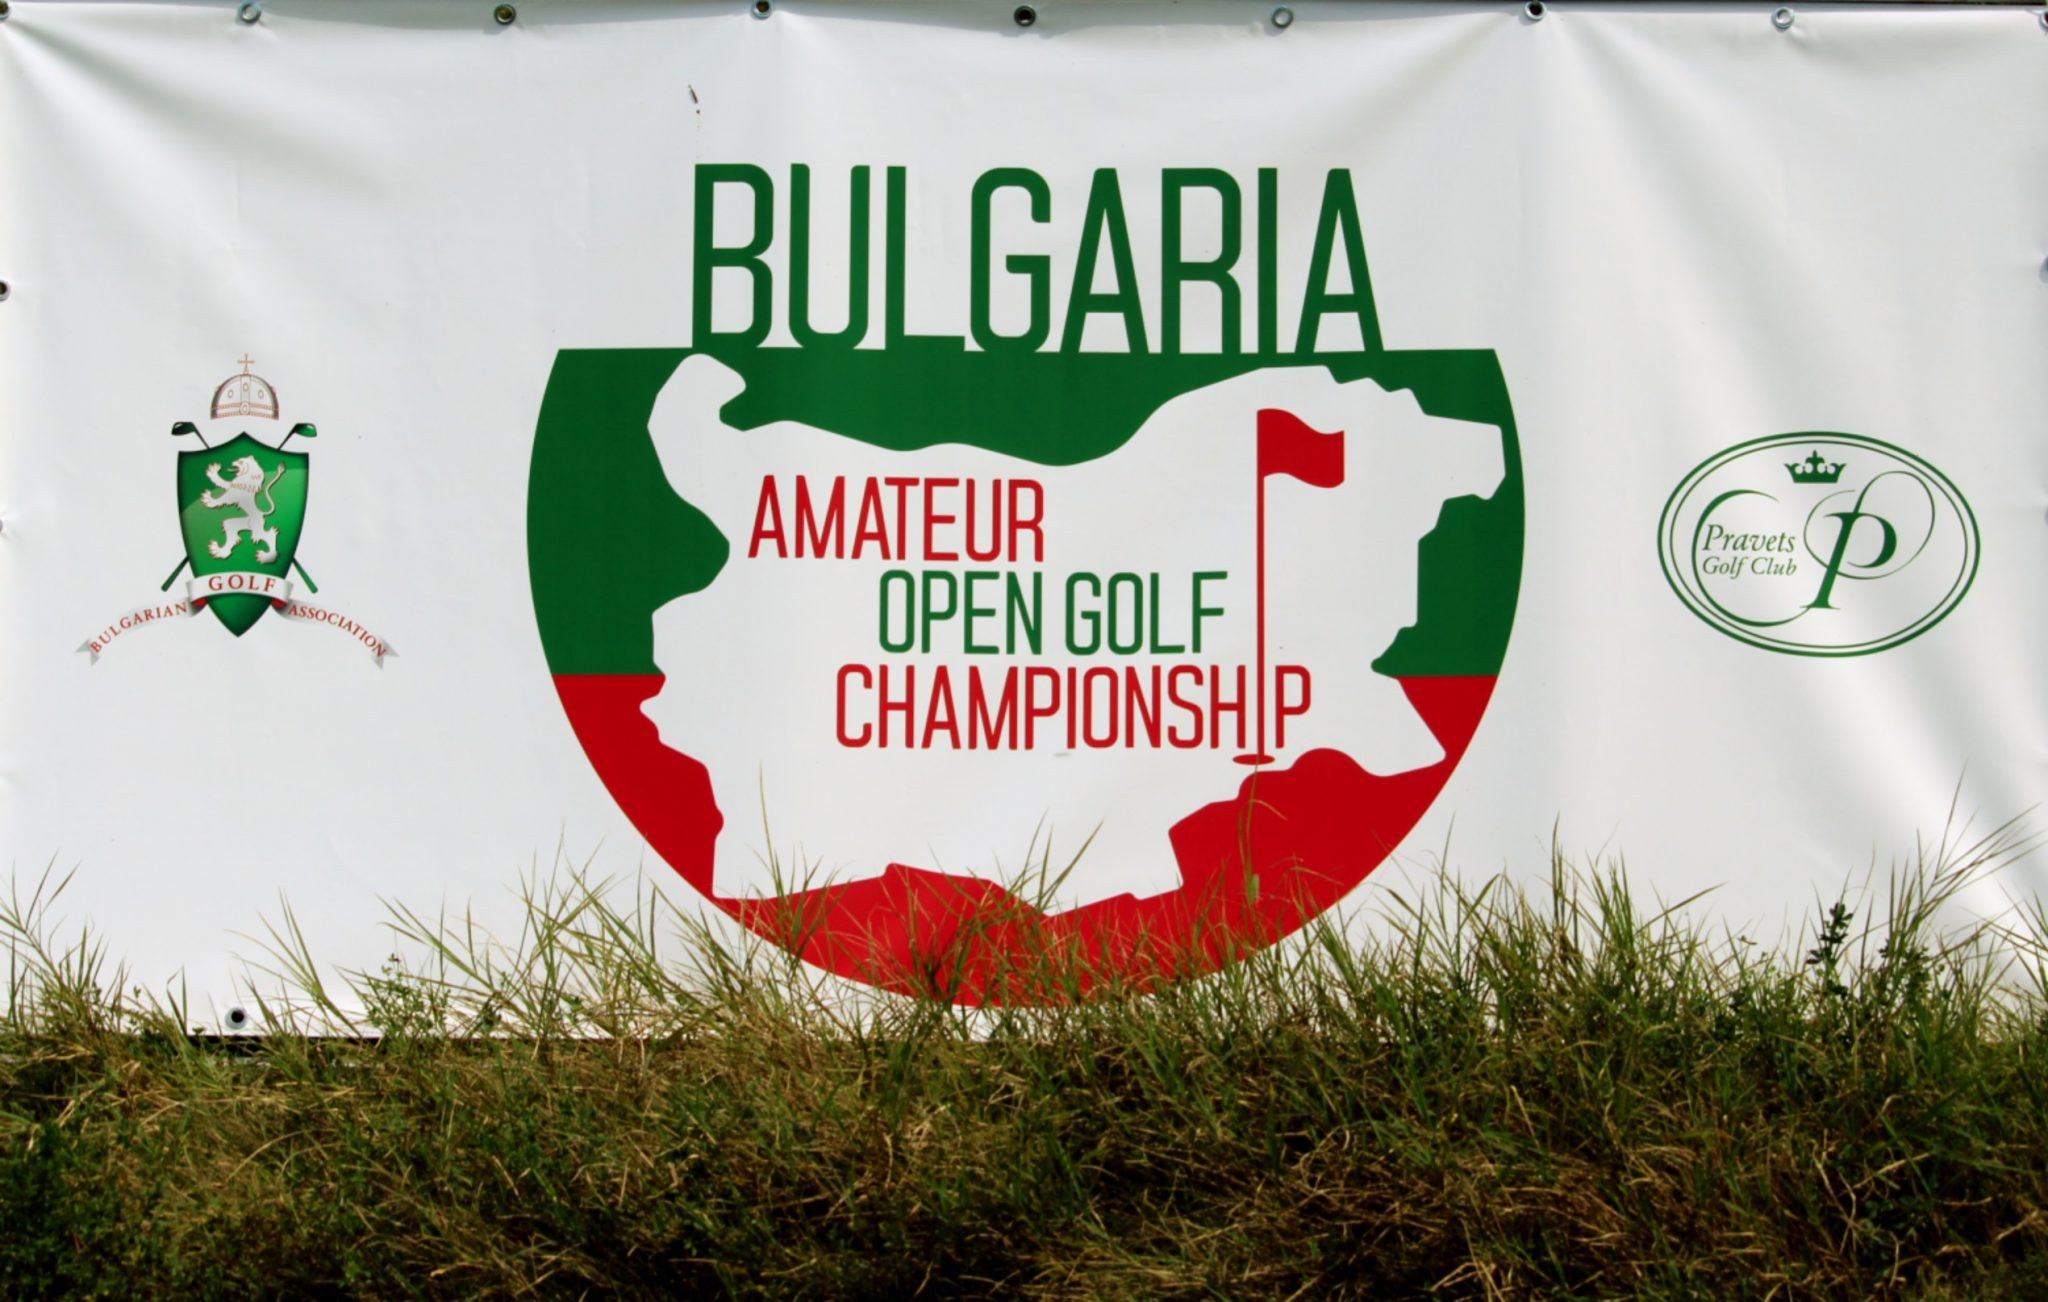 Bulgaria Amateur Open Golf Championship (71)